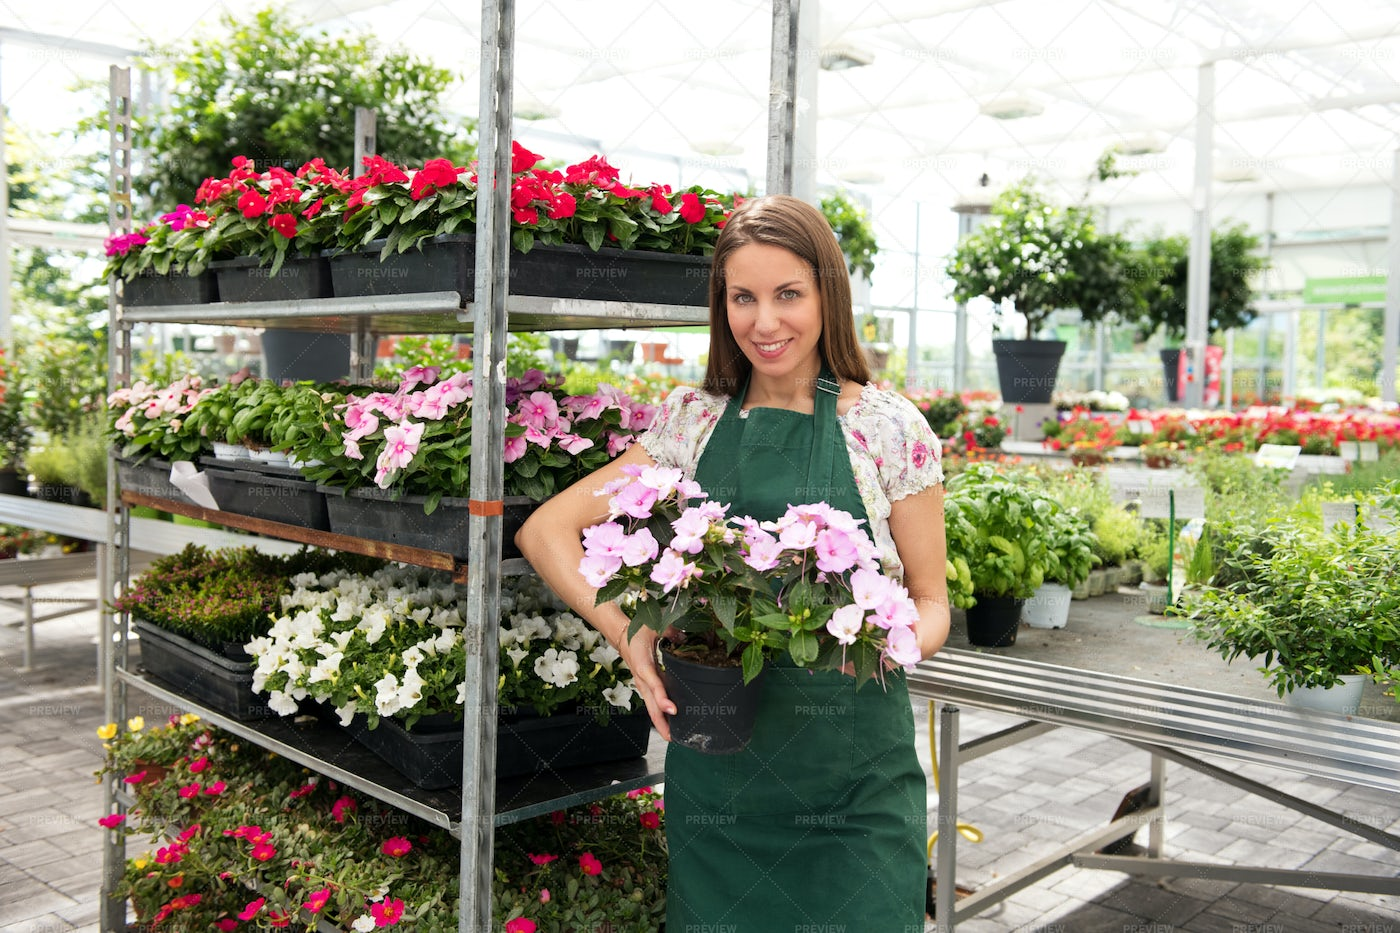 Woman Holding Potted Plants: Stock Photos